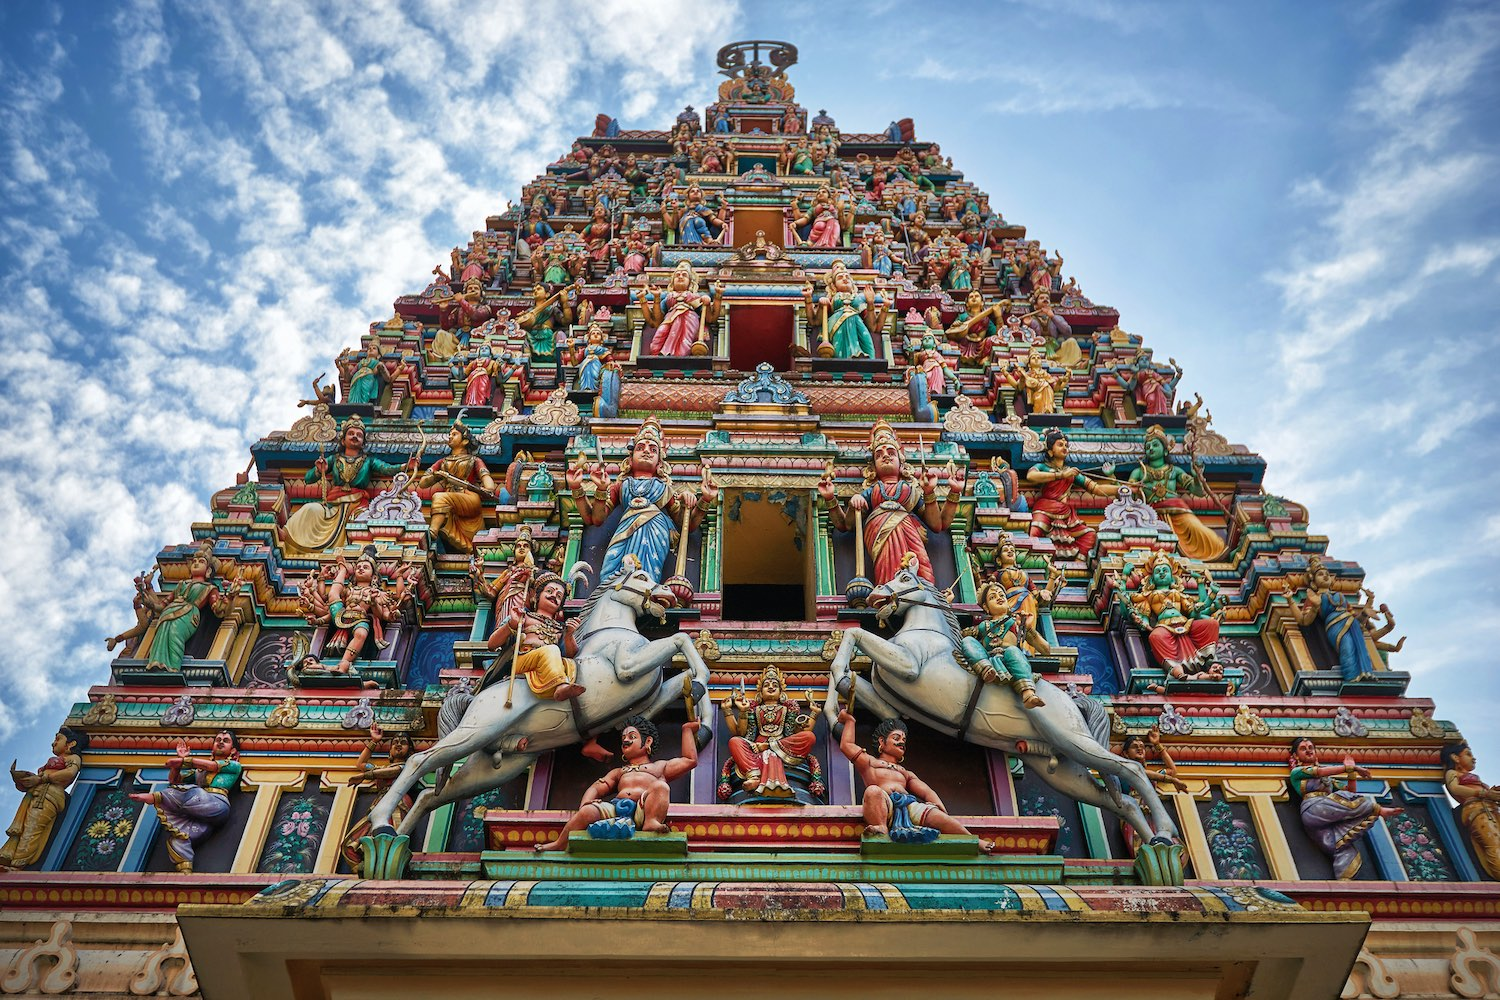 Sri Mahamariamman Temple - Places to VIsit in Kuala Lumpur in 48 Hours